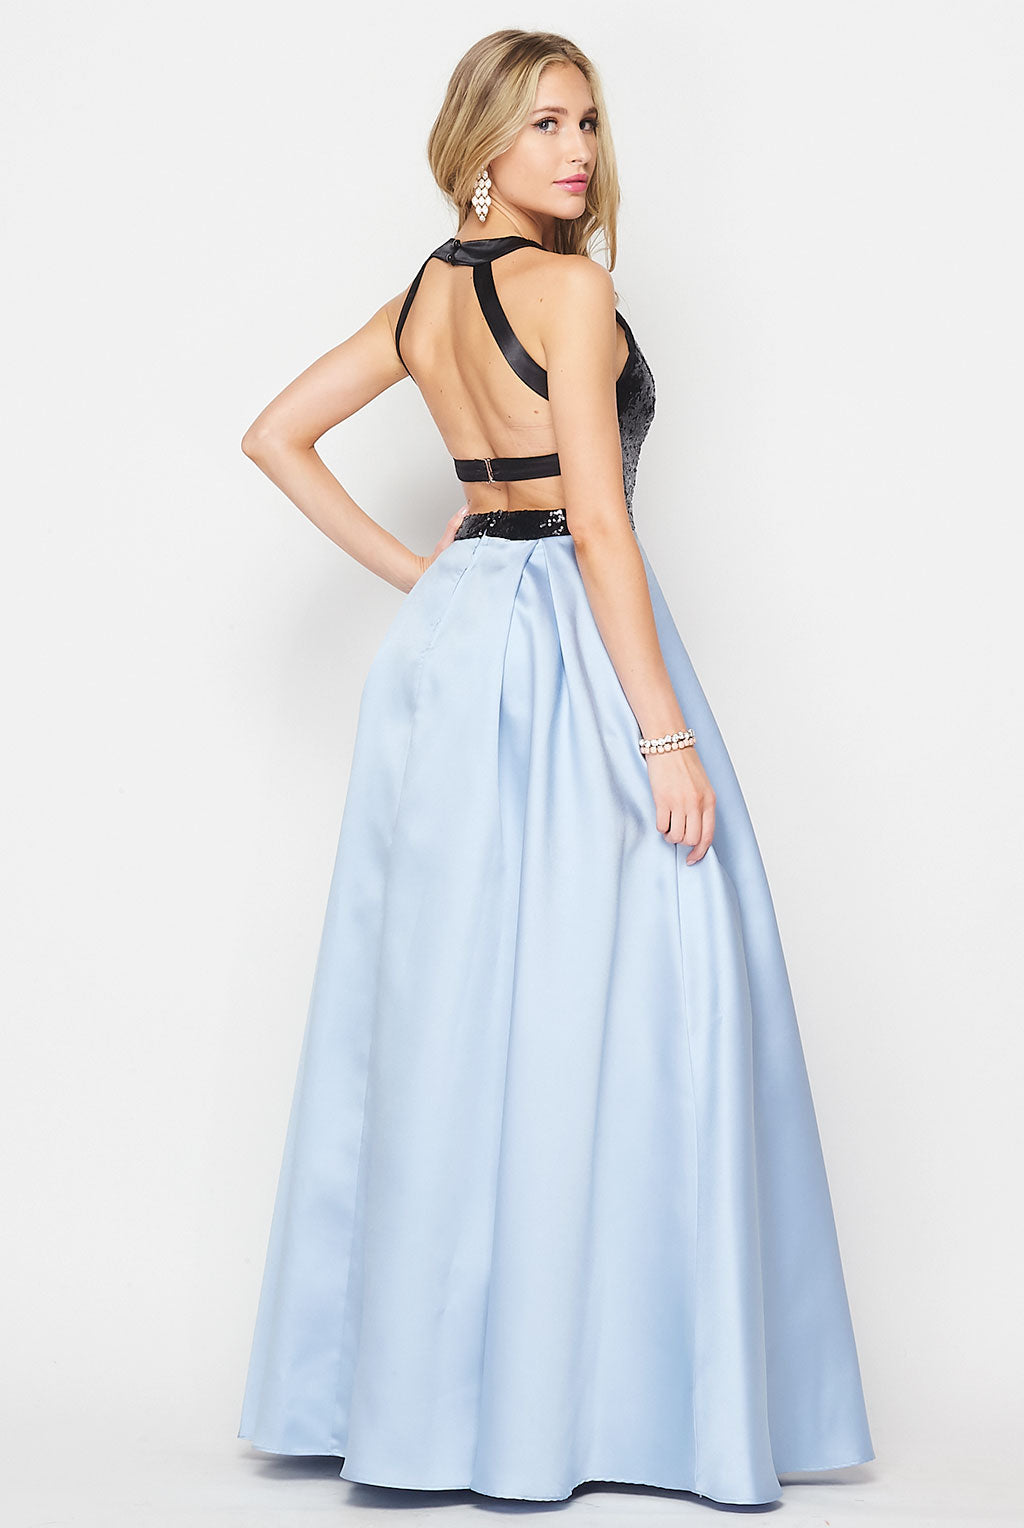 Teeze Me | Sleeveless Open Back Sequin Top Ball Gown | Skyblue/Black